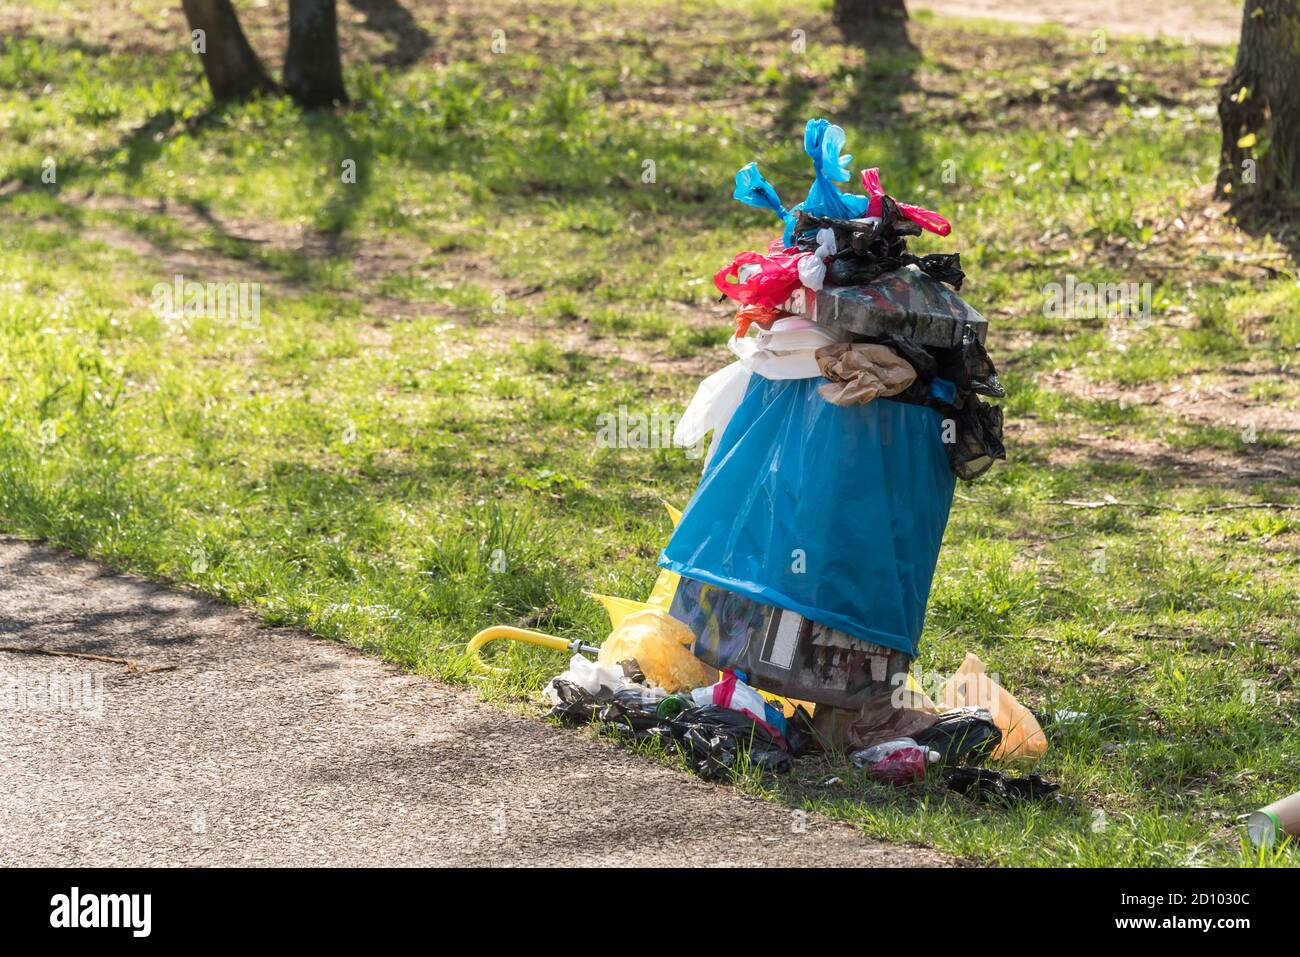 Overfull rubbish bin in park - waste, plastic bags, dog poo, messy Stock Photo